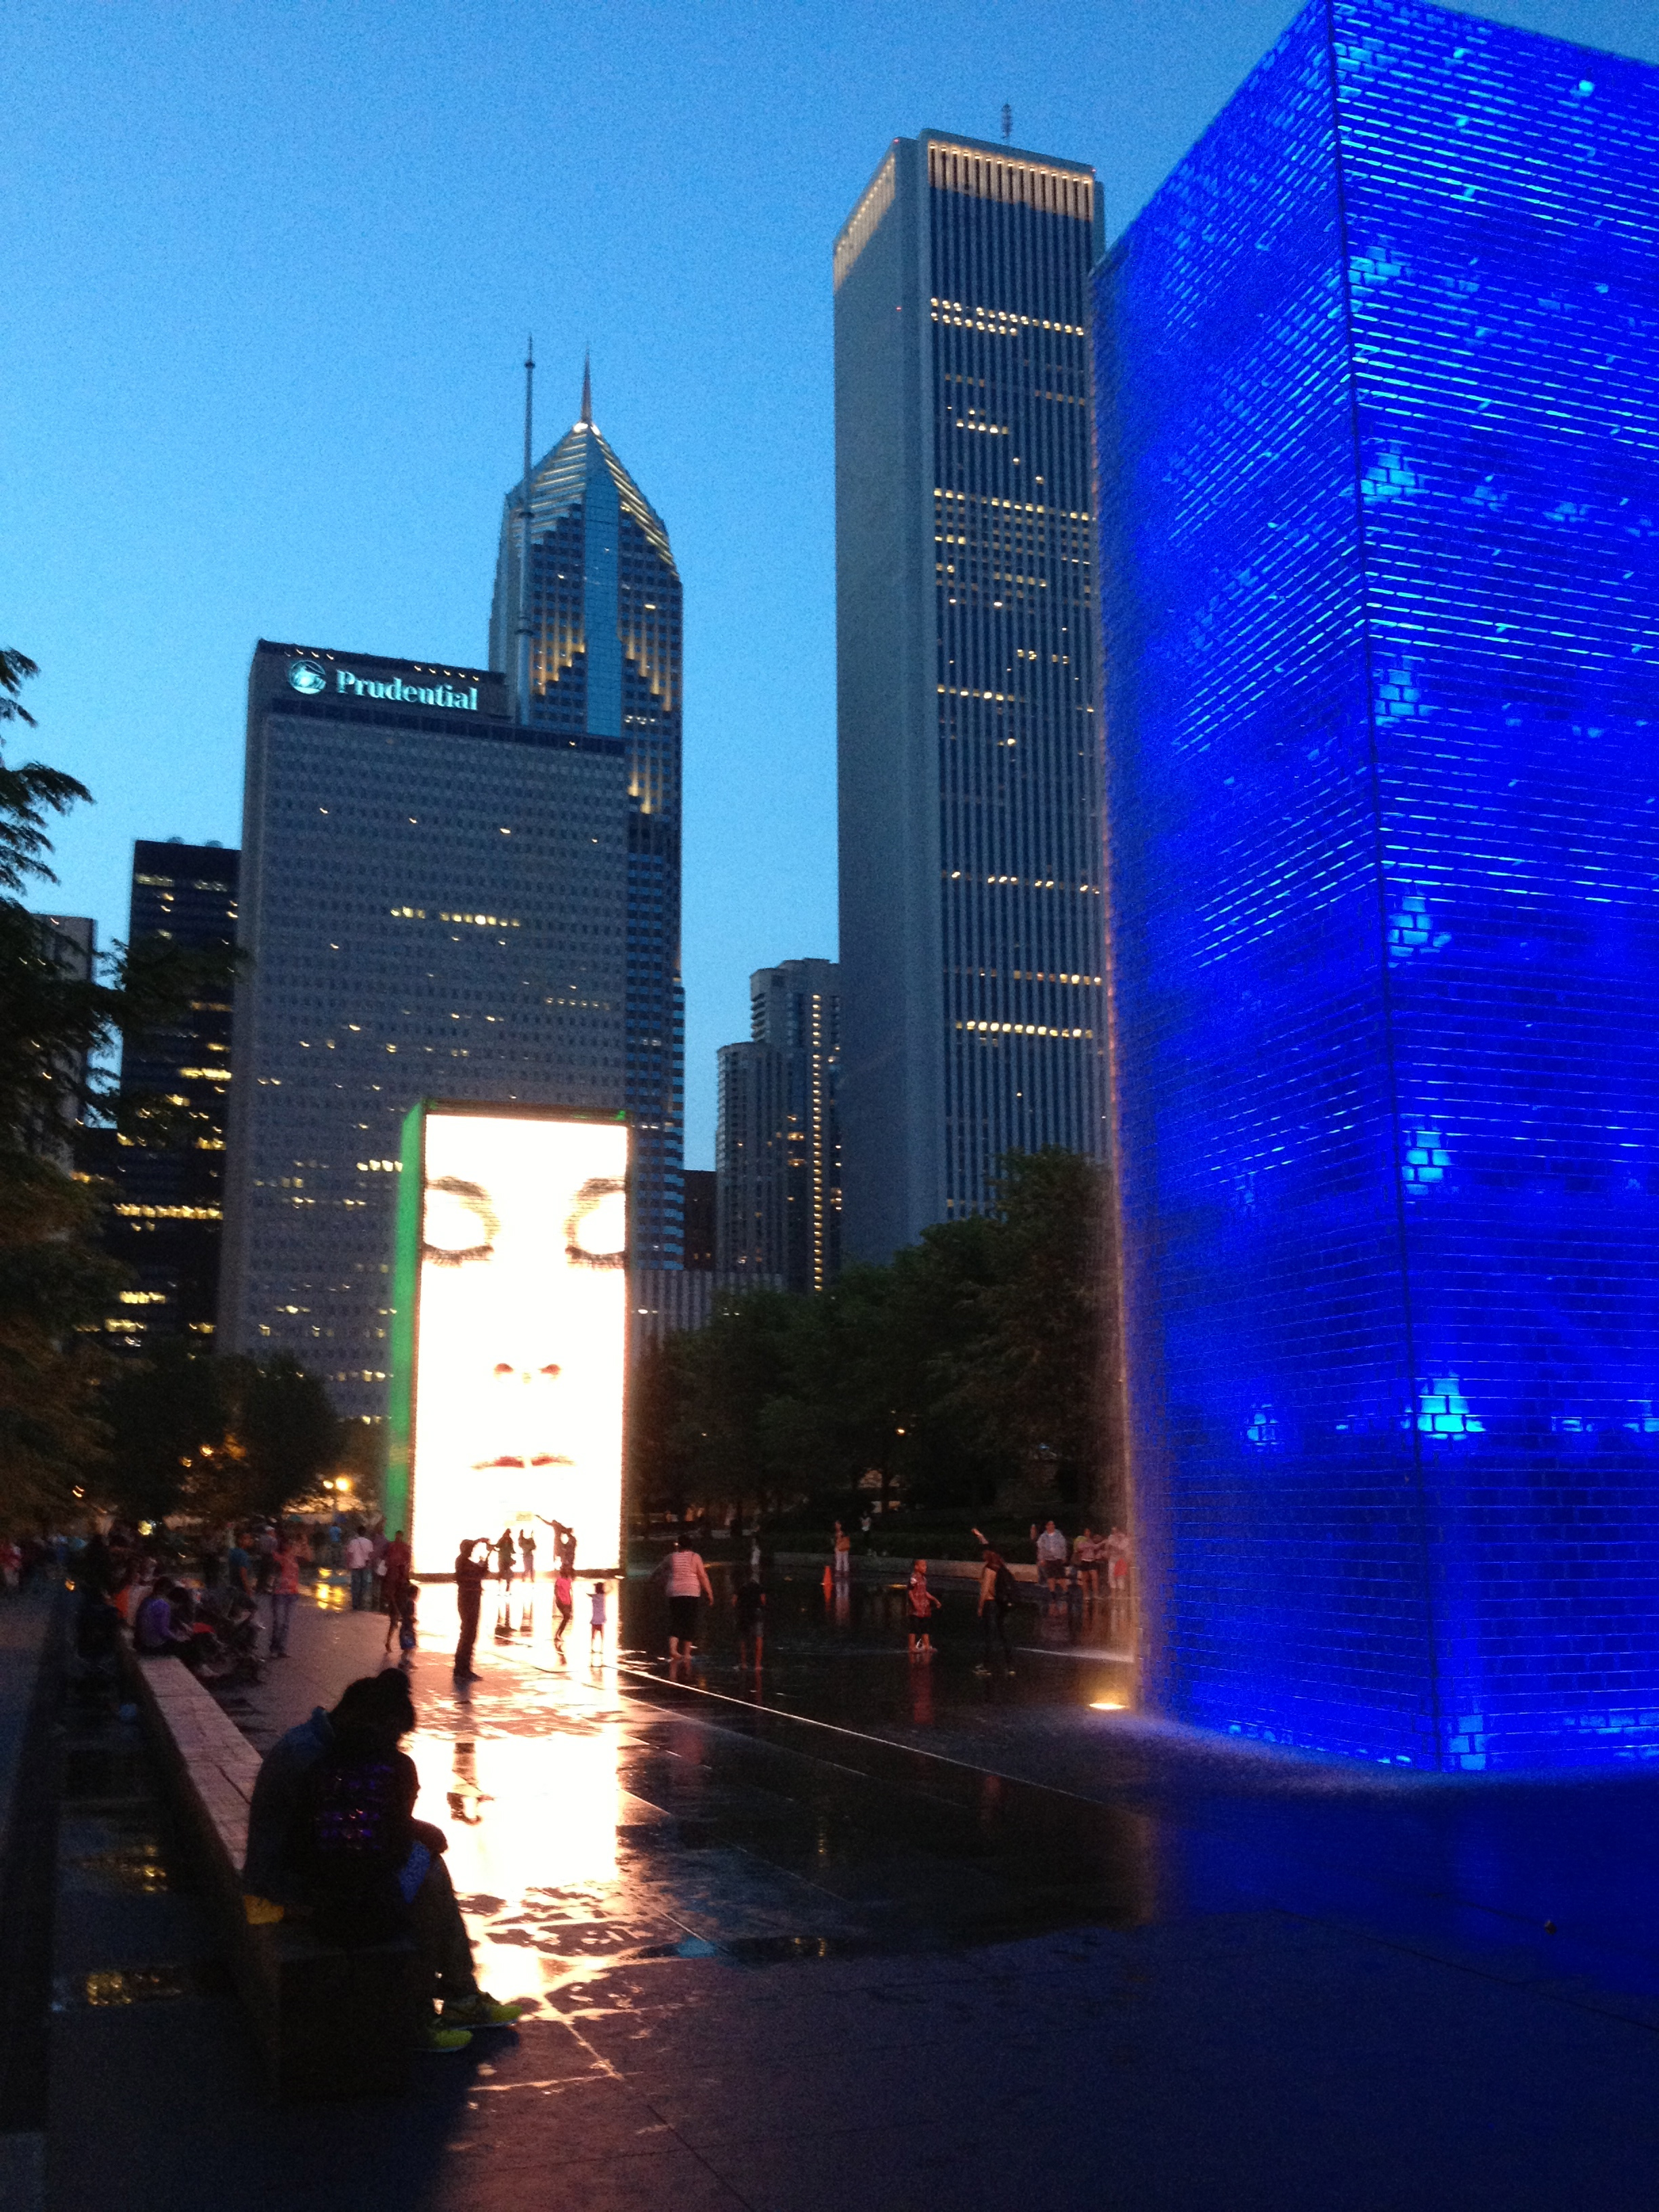 Even at night the Crown Fountain attracts hundreds of people of all ages and backgrounds to play and interact with the LED faces and the wading pool.